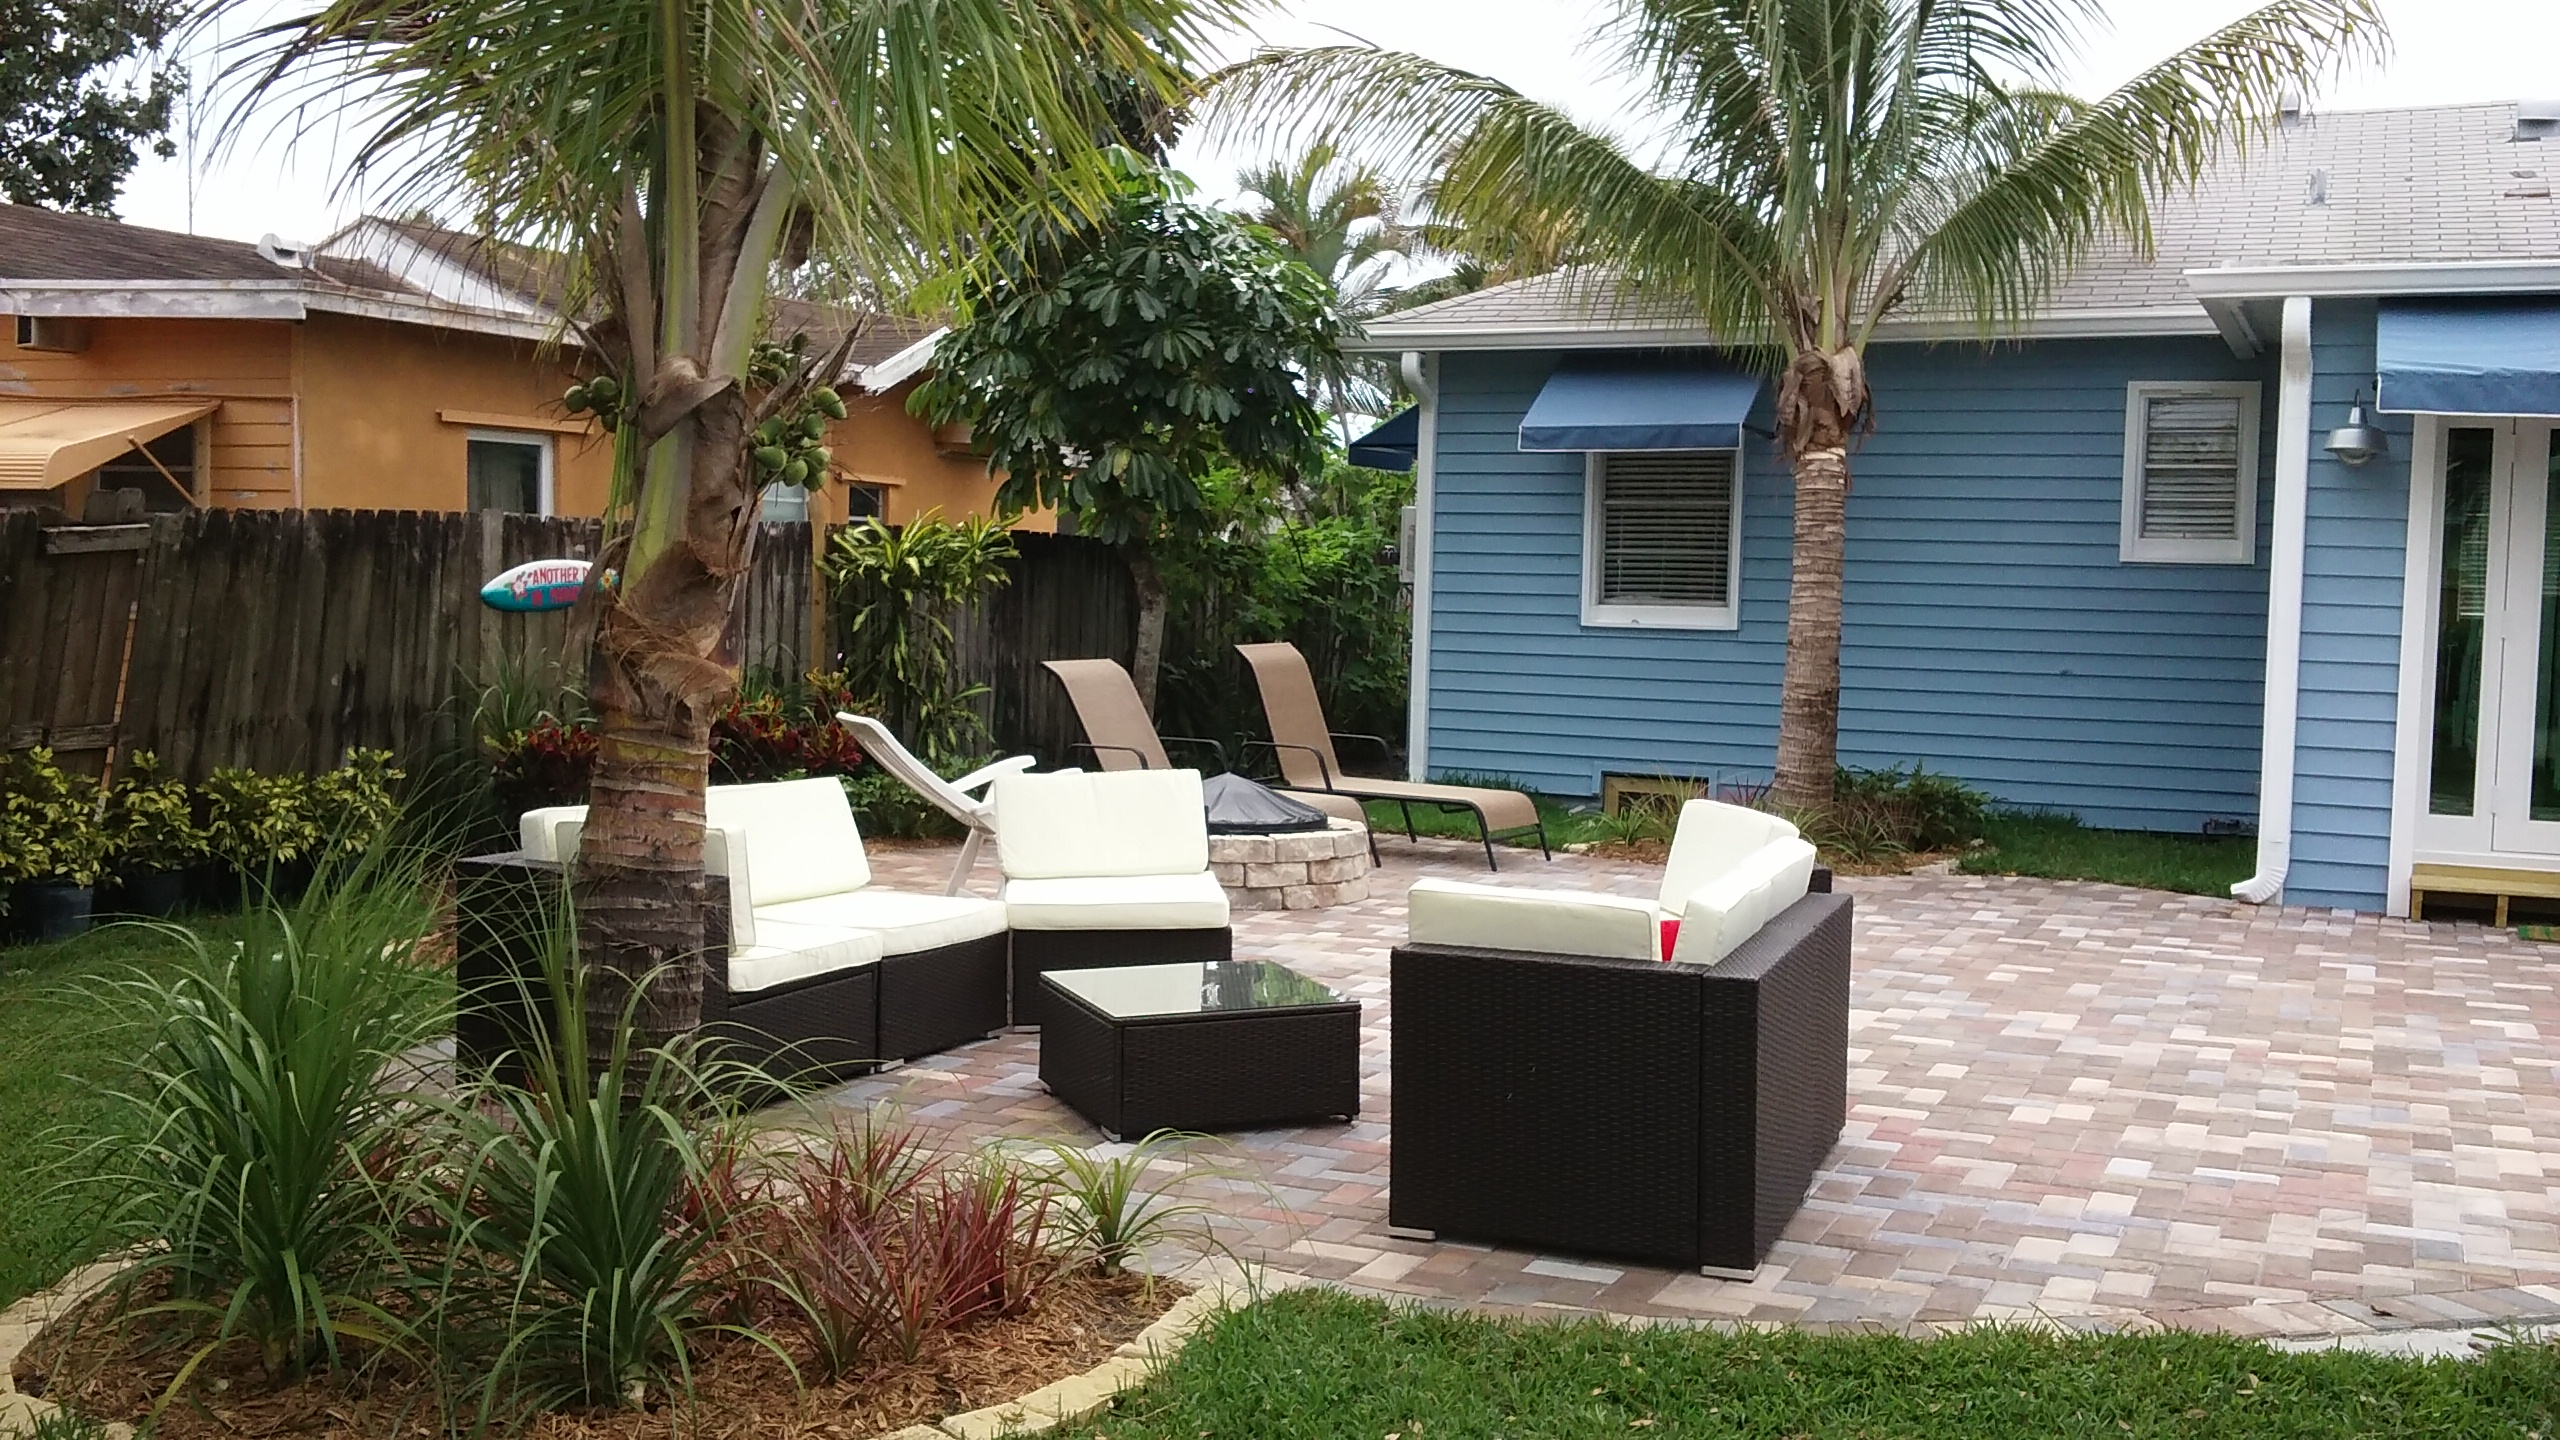 Beach Retreat In Lake Worth, 2 Bedr. Designer Kitchen, Relaxing Backyard PETS OK